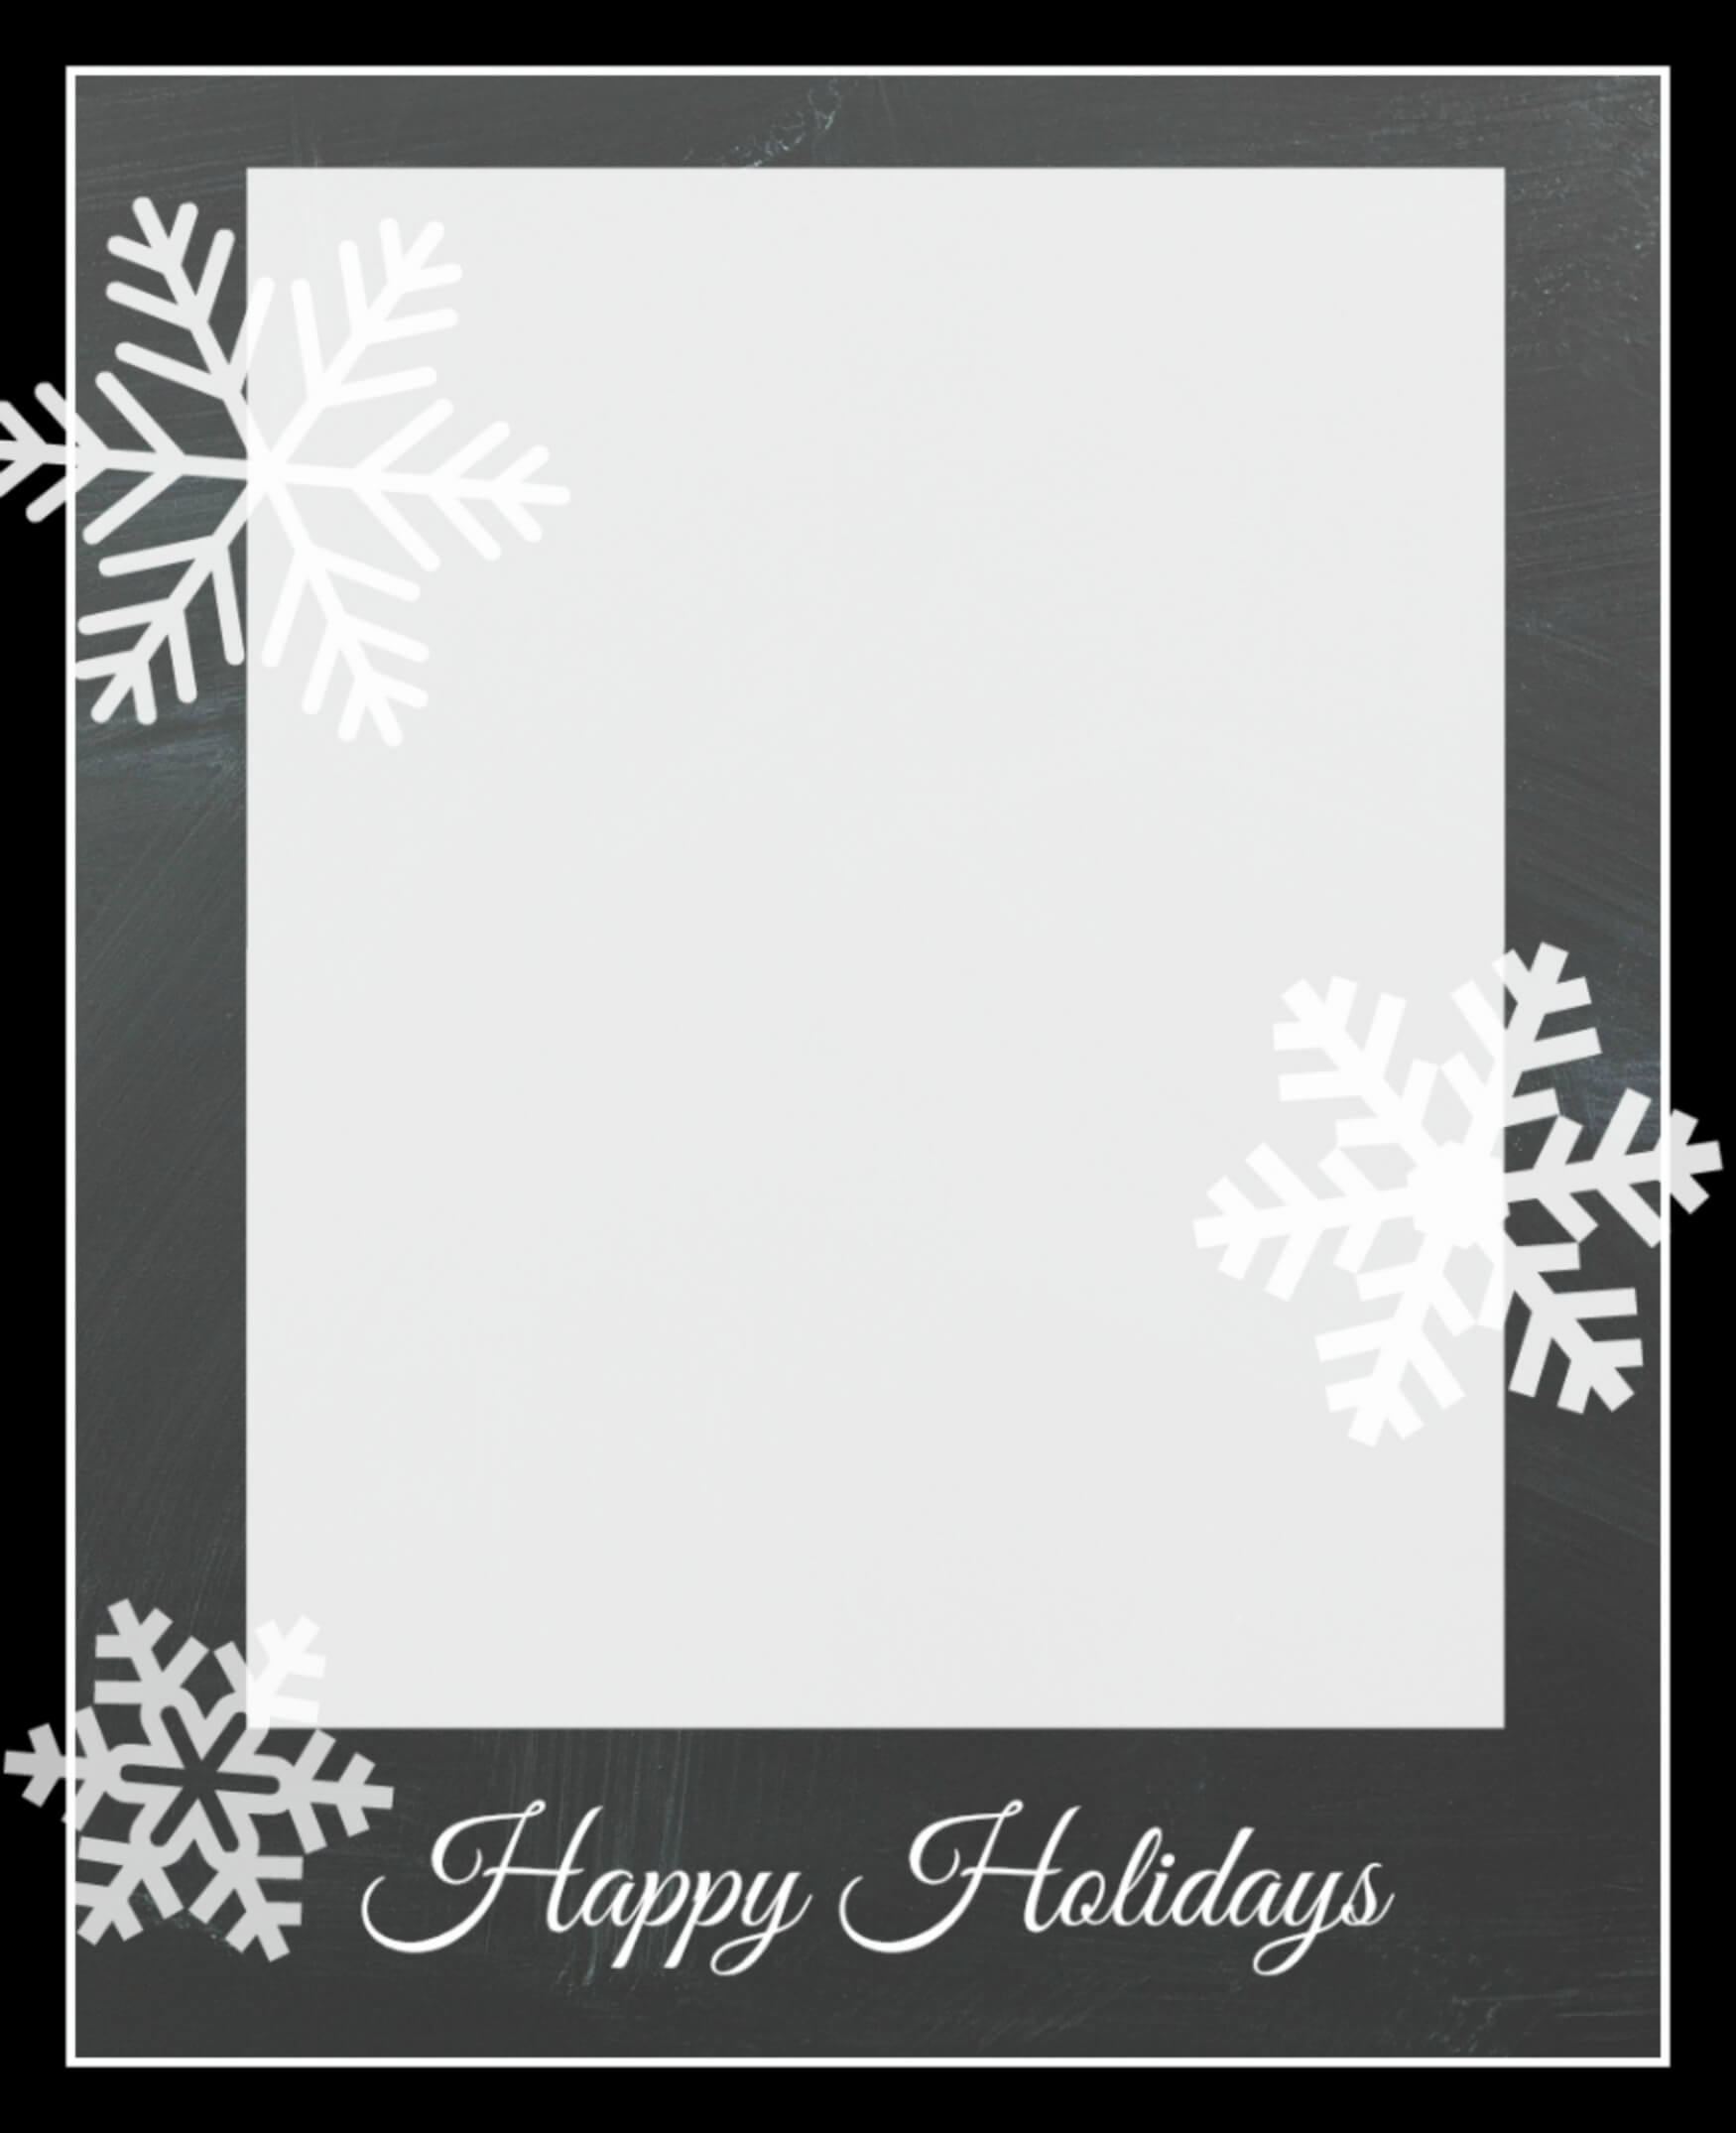 Free Christmas Card Templates - Crazy Little Projects Intended For Happy Holidays Card Template